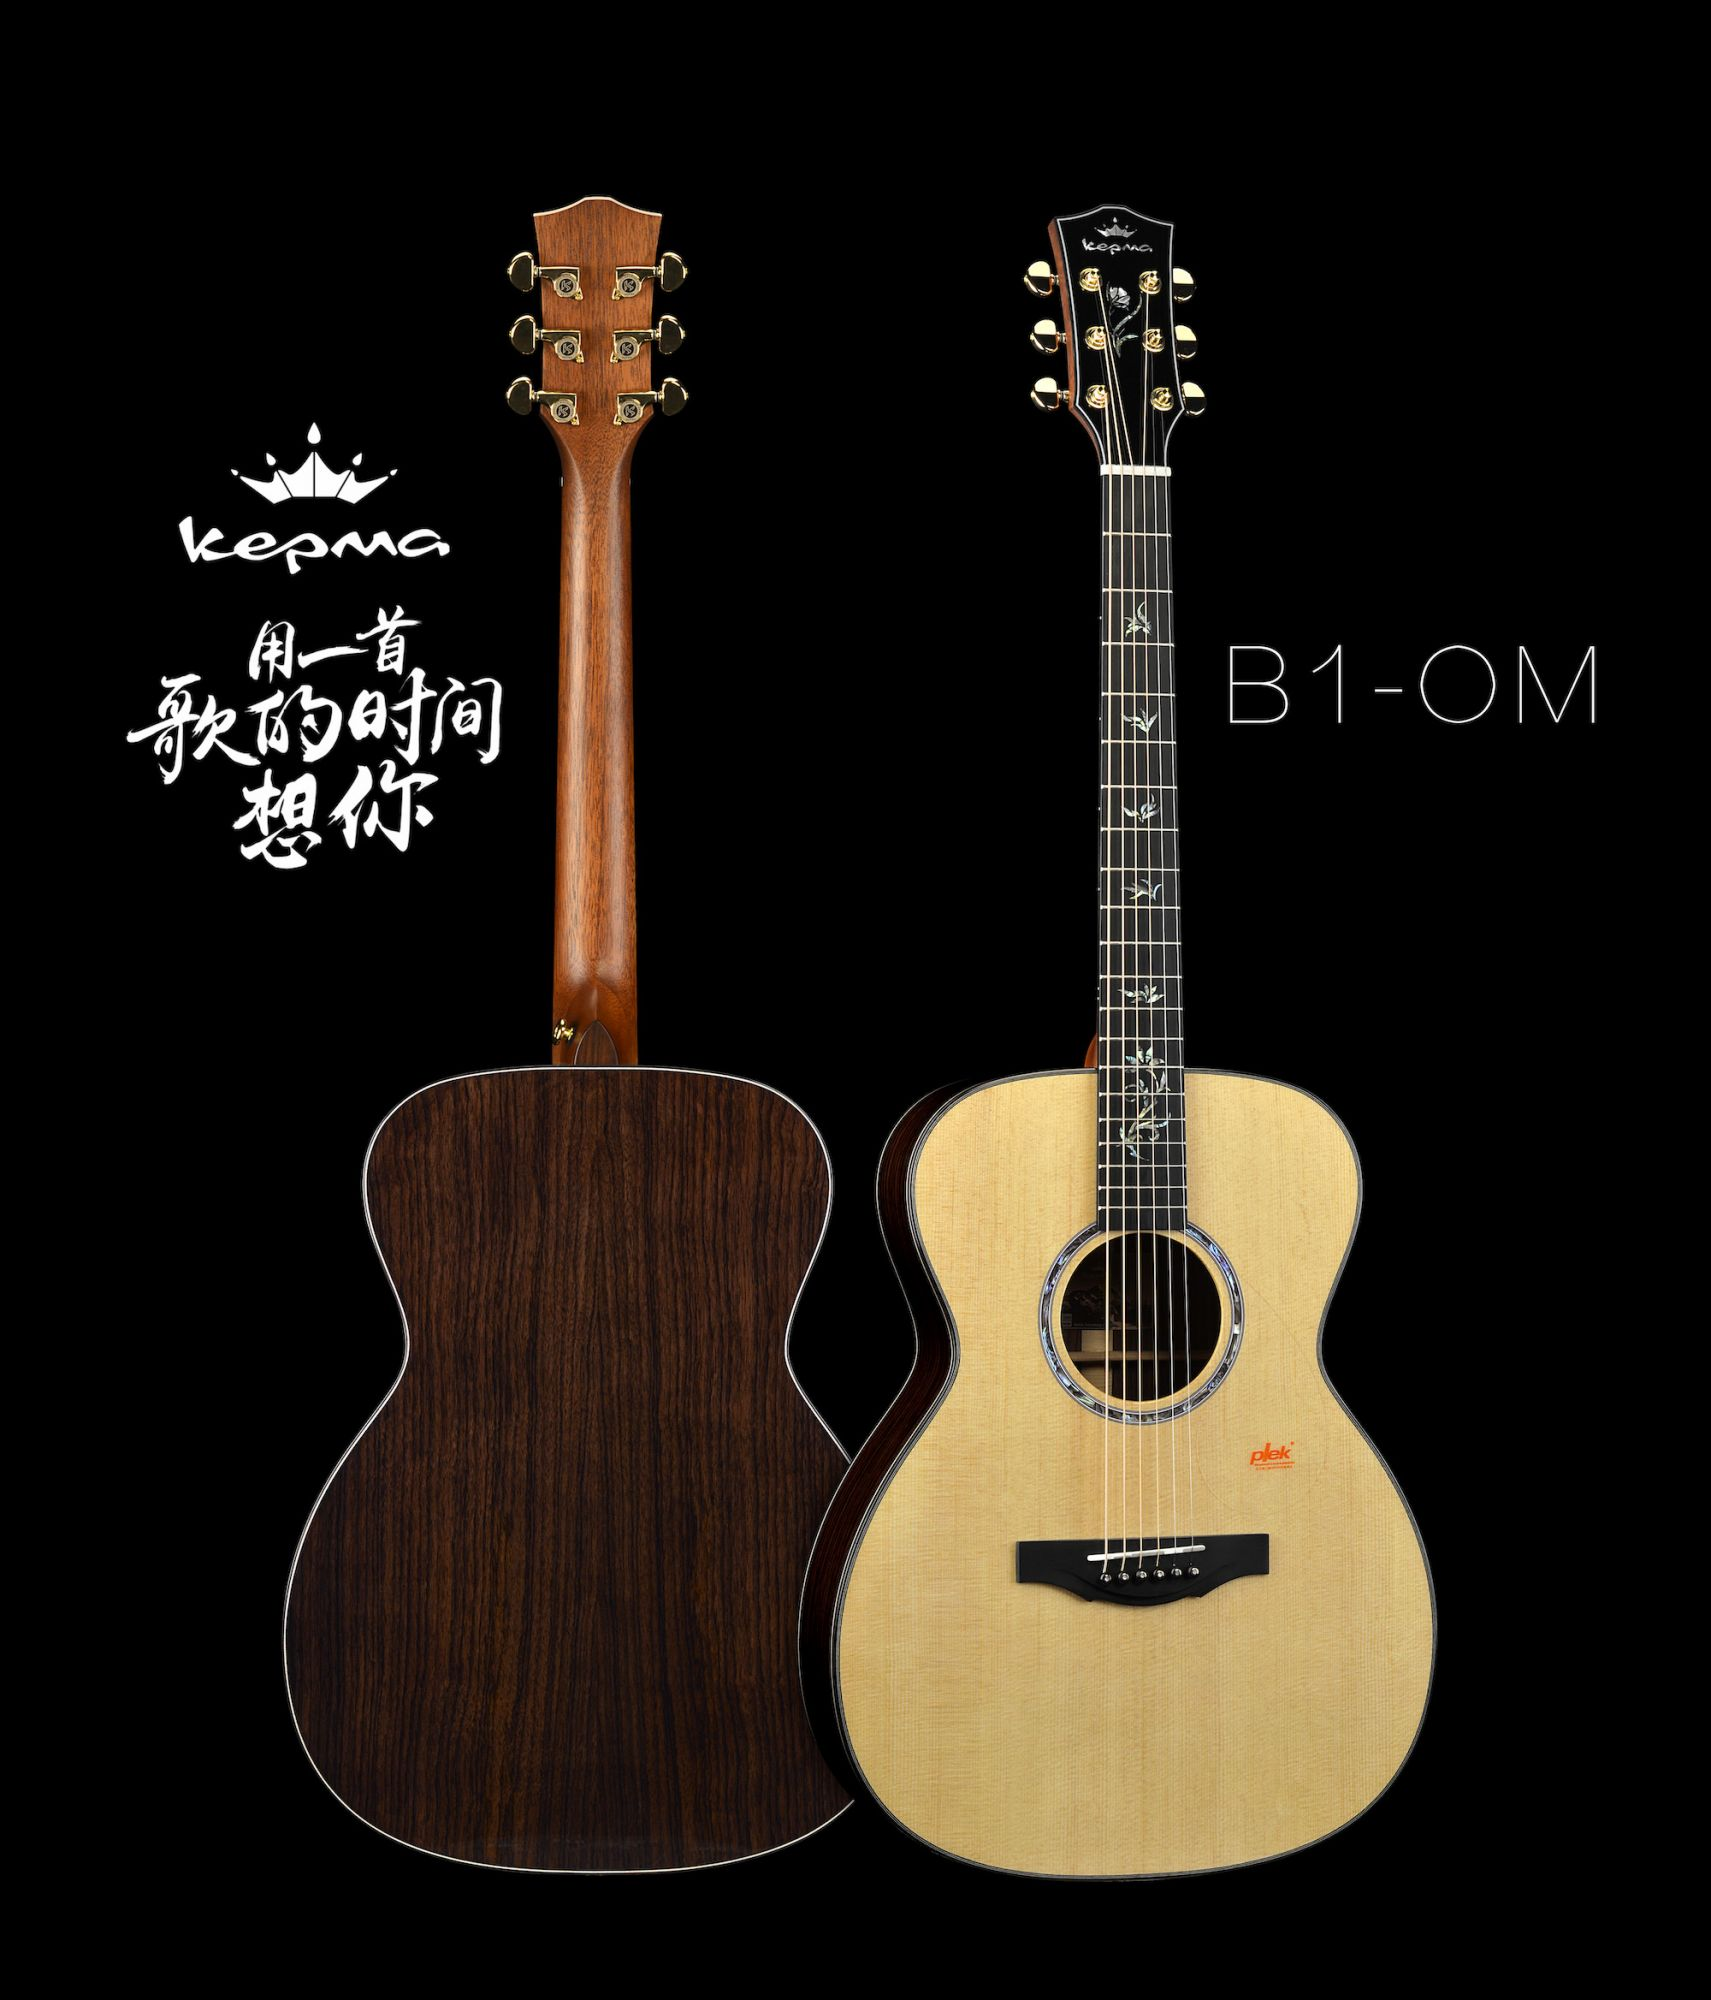 Kepma B1E OM shape All solid guitar with Lr Baggs Stage pro Anthem pick up